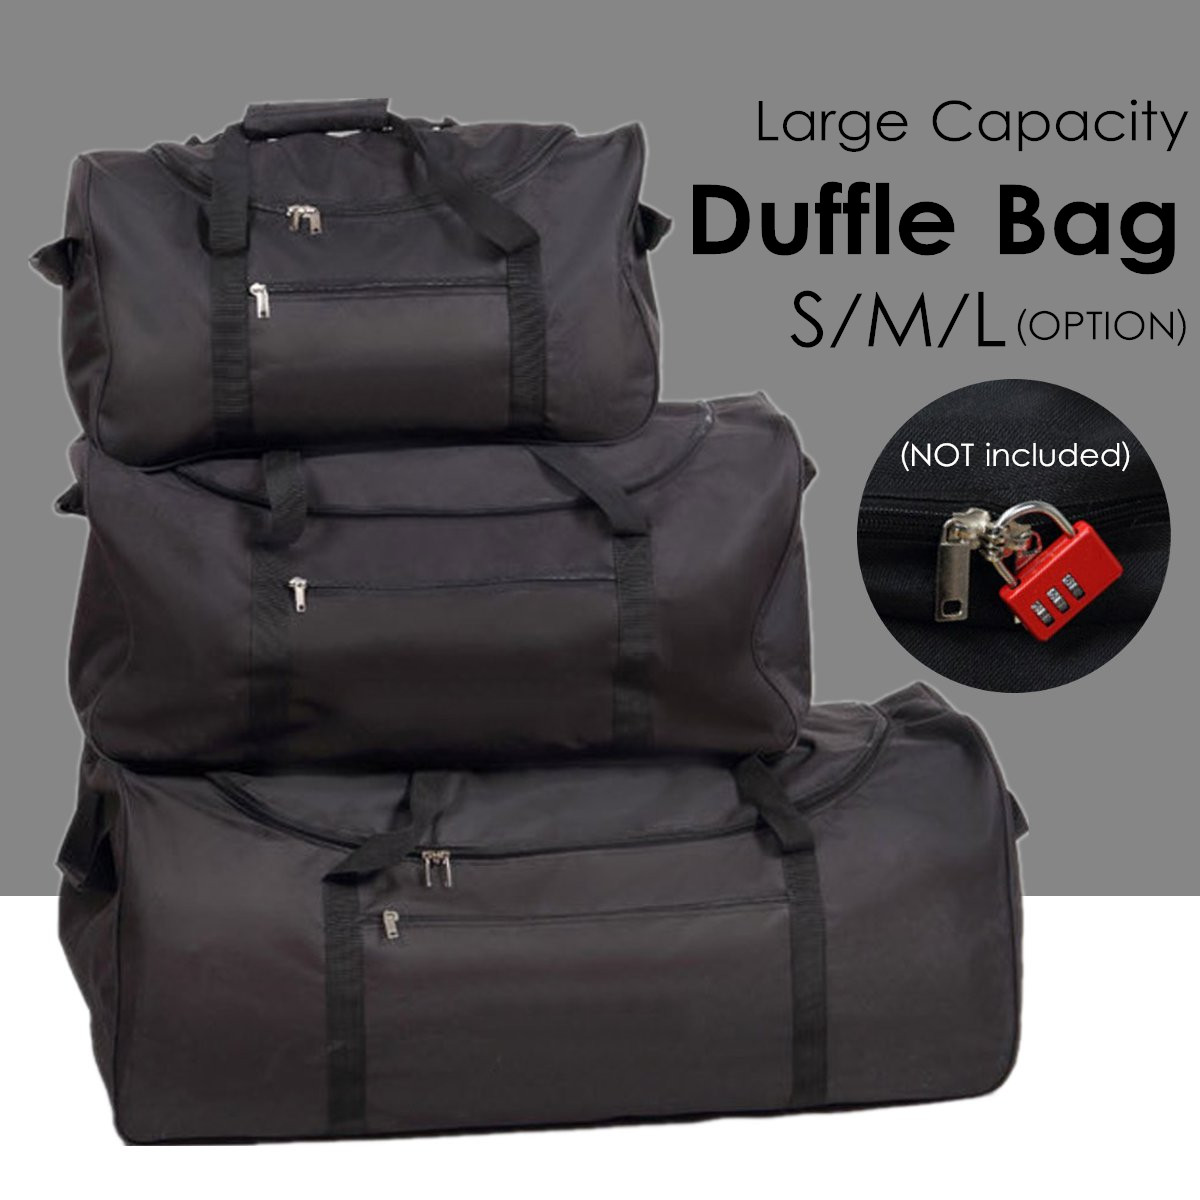 Outdoor Camping Waterproof Oxford Travel Large Duffle Bags Foldable Luggage Handbag Woman Men Backpack Storage Pouch Tote S/M/LOutdoor Camping Waterproof Oxford Travel Large Duffle Bags Foldable Luggage Handbag Woman Men Backpack Storage Pouch Tote S/M/L